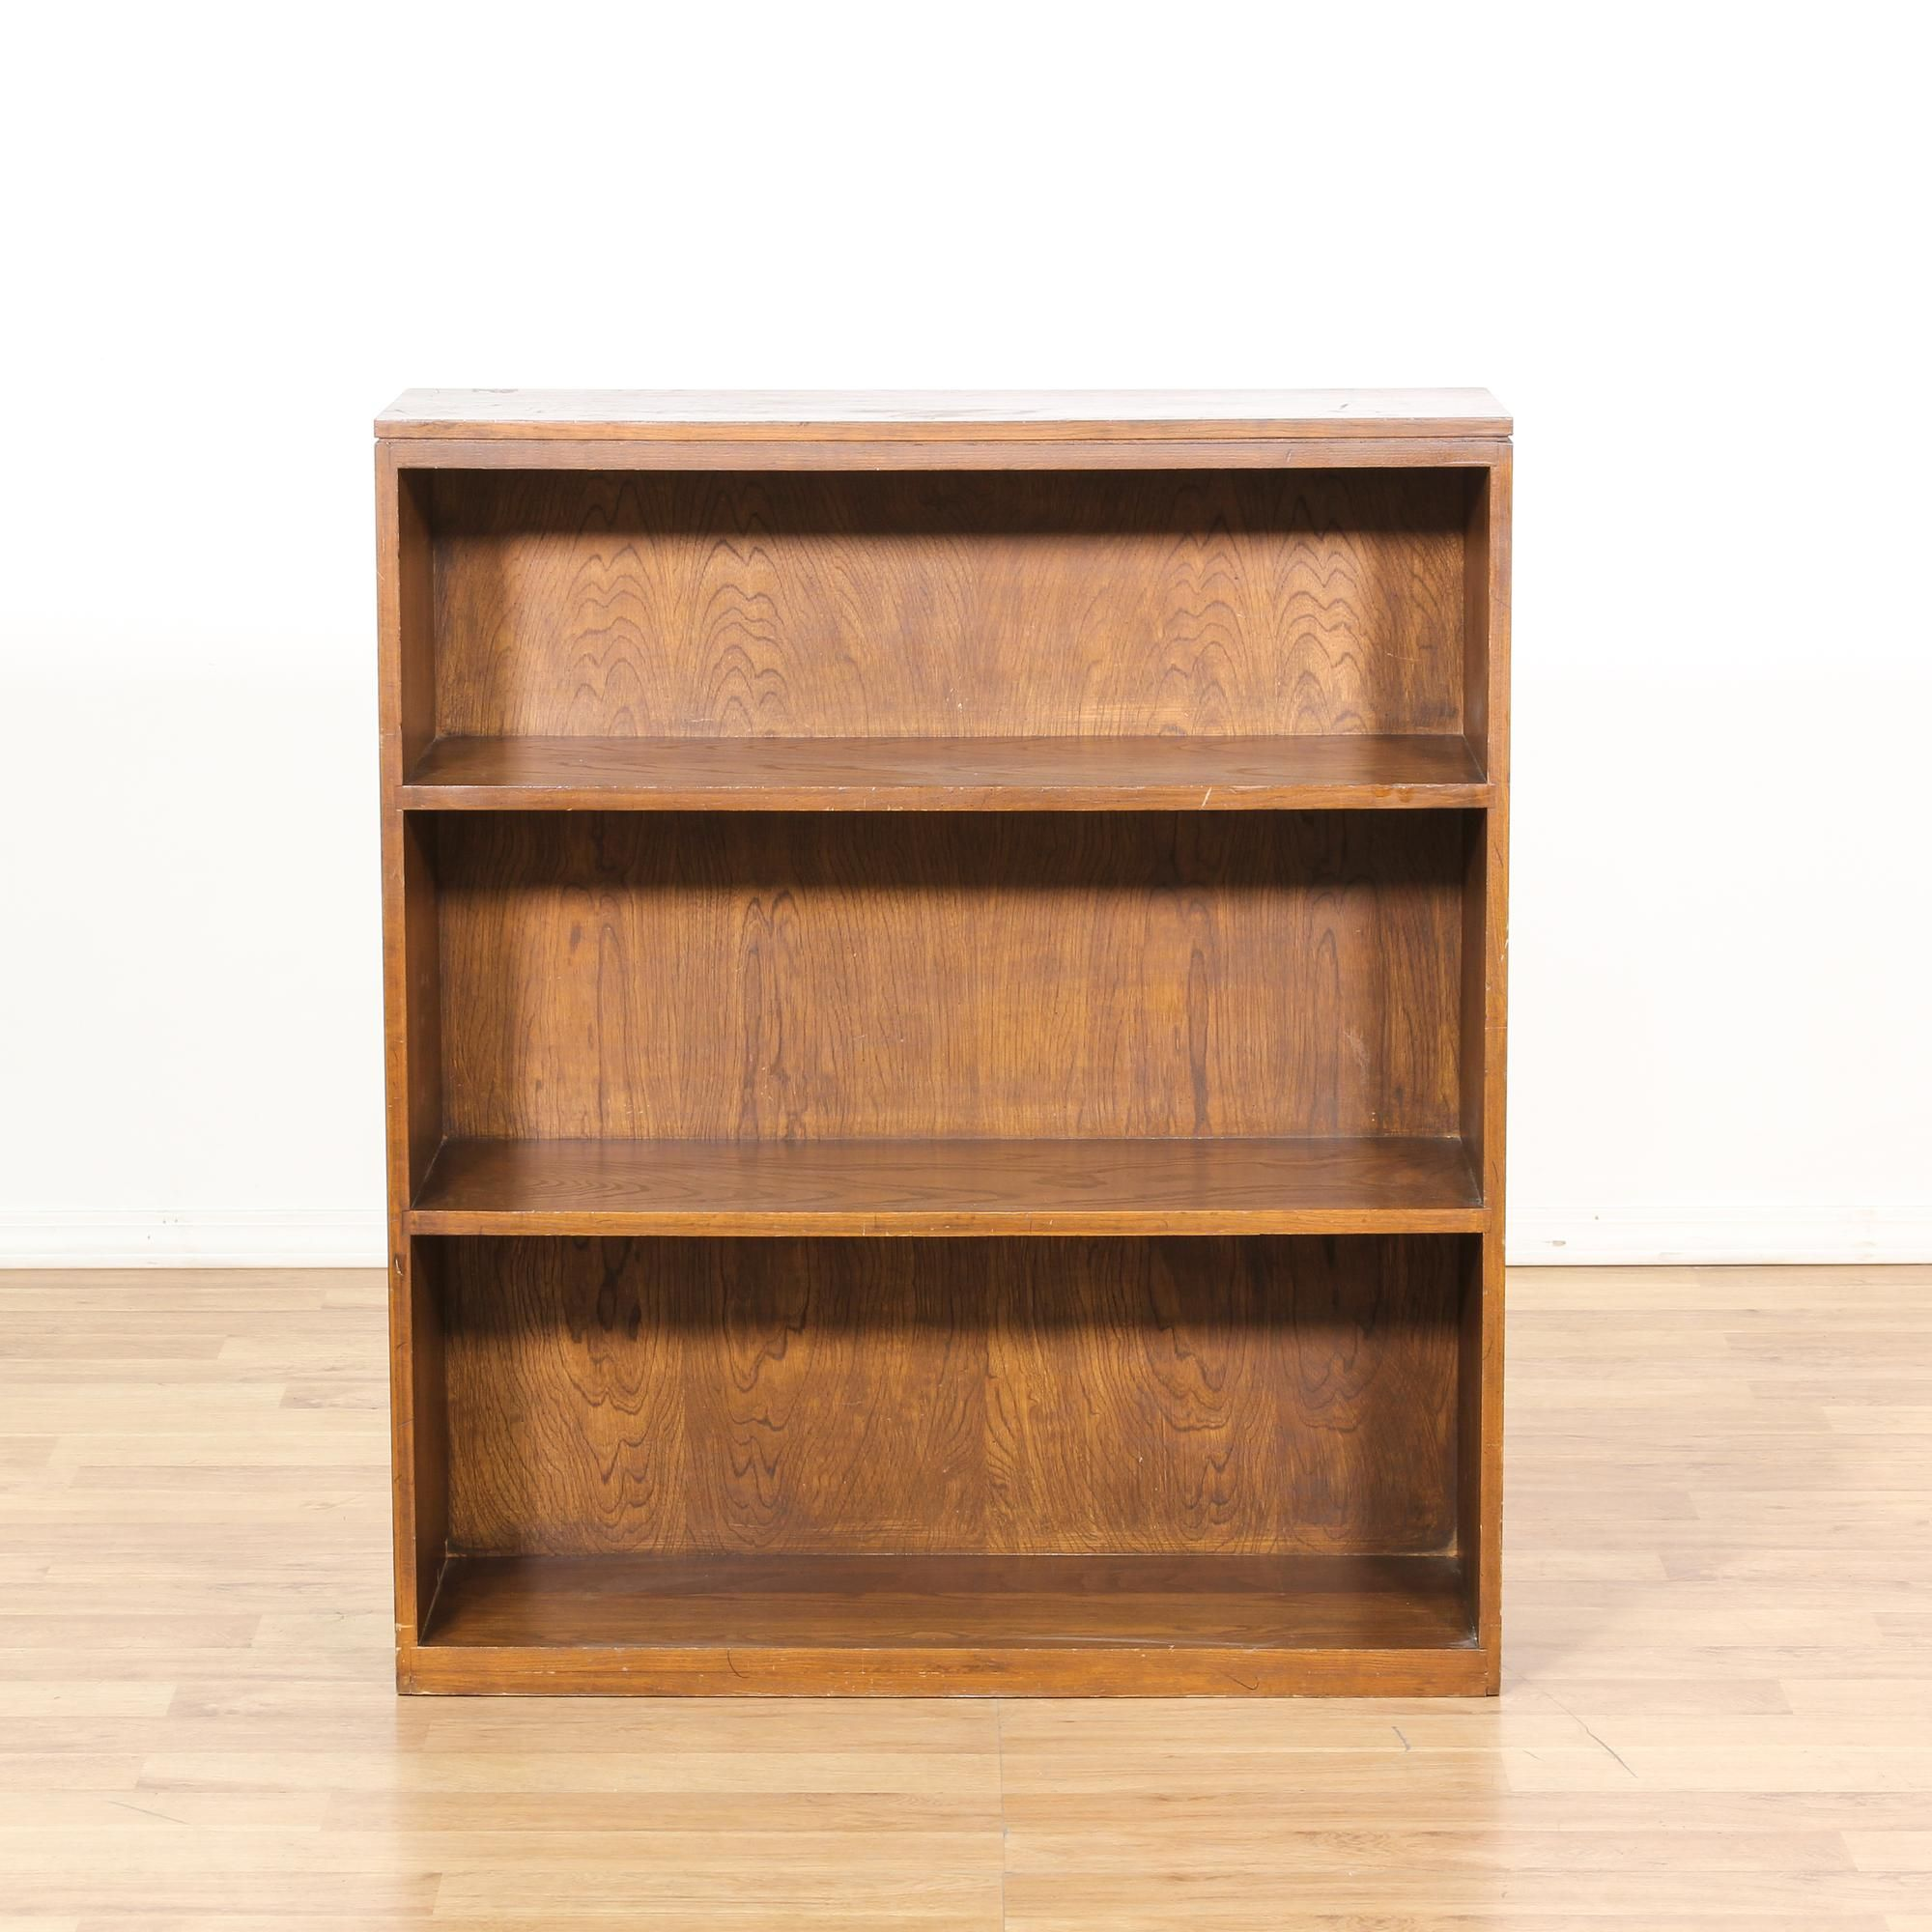 This Bookcase Is Featured In A Solid Wood With Glossy Dark Oak Finish